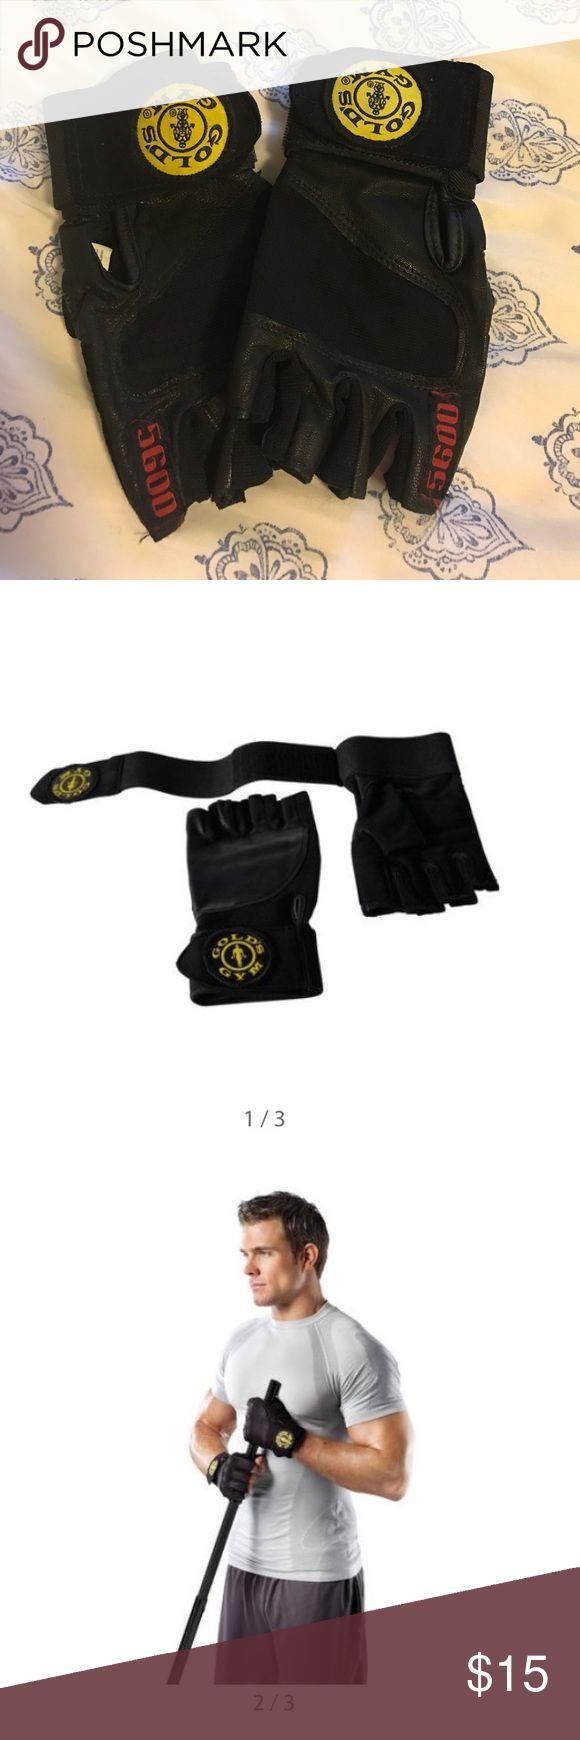 Gold's Gym Wrist Wrap Gloves Have been worn but in excellent condition! Offers welcome🌟 Gold's Gym Accessories Gloves